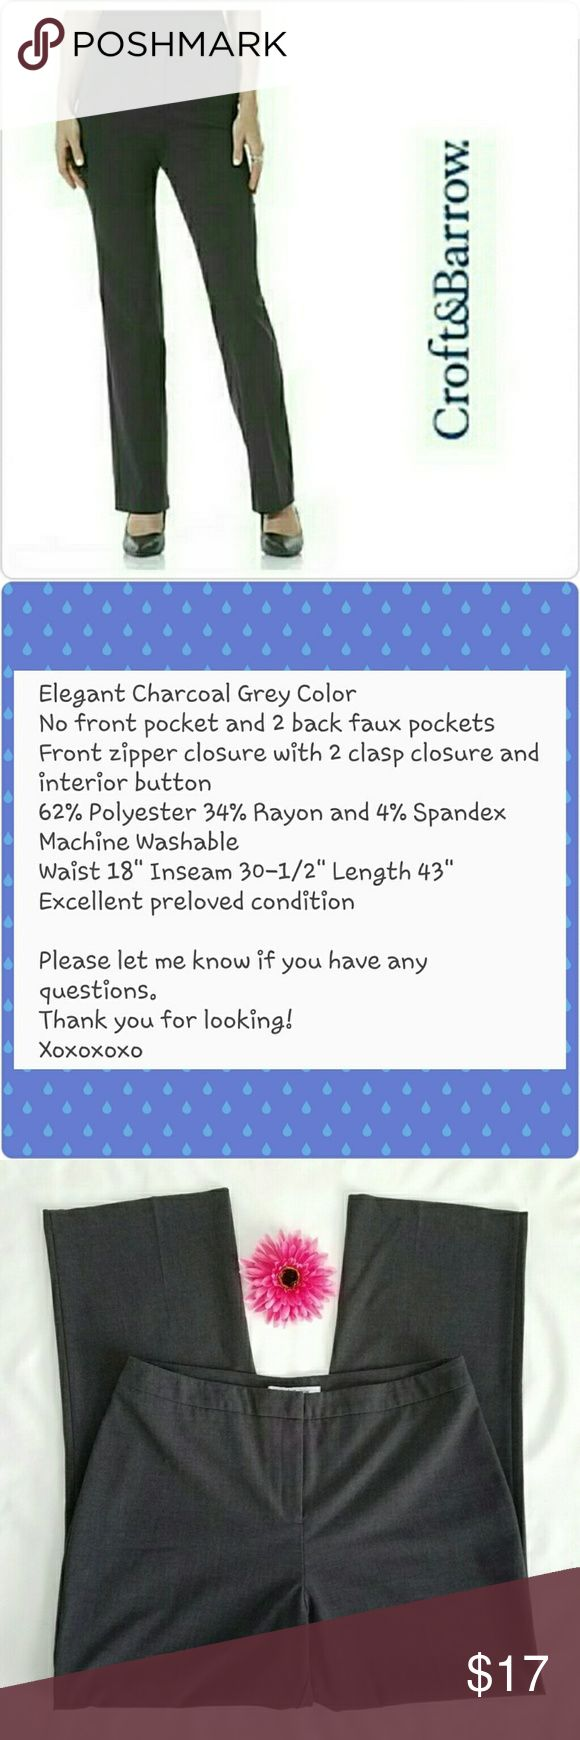 Croft & Barrow Gray Dress Slacks Pants Size 16 Hi! Thank you so much for stopping by my closet! I hope you'll find something you love! See picture #2 for all the details and please let me know if you have any questions! Much love,  Christine croft & barrow Pants Trousers